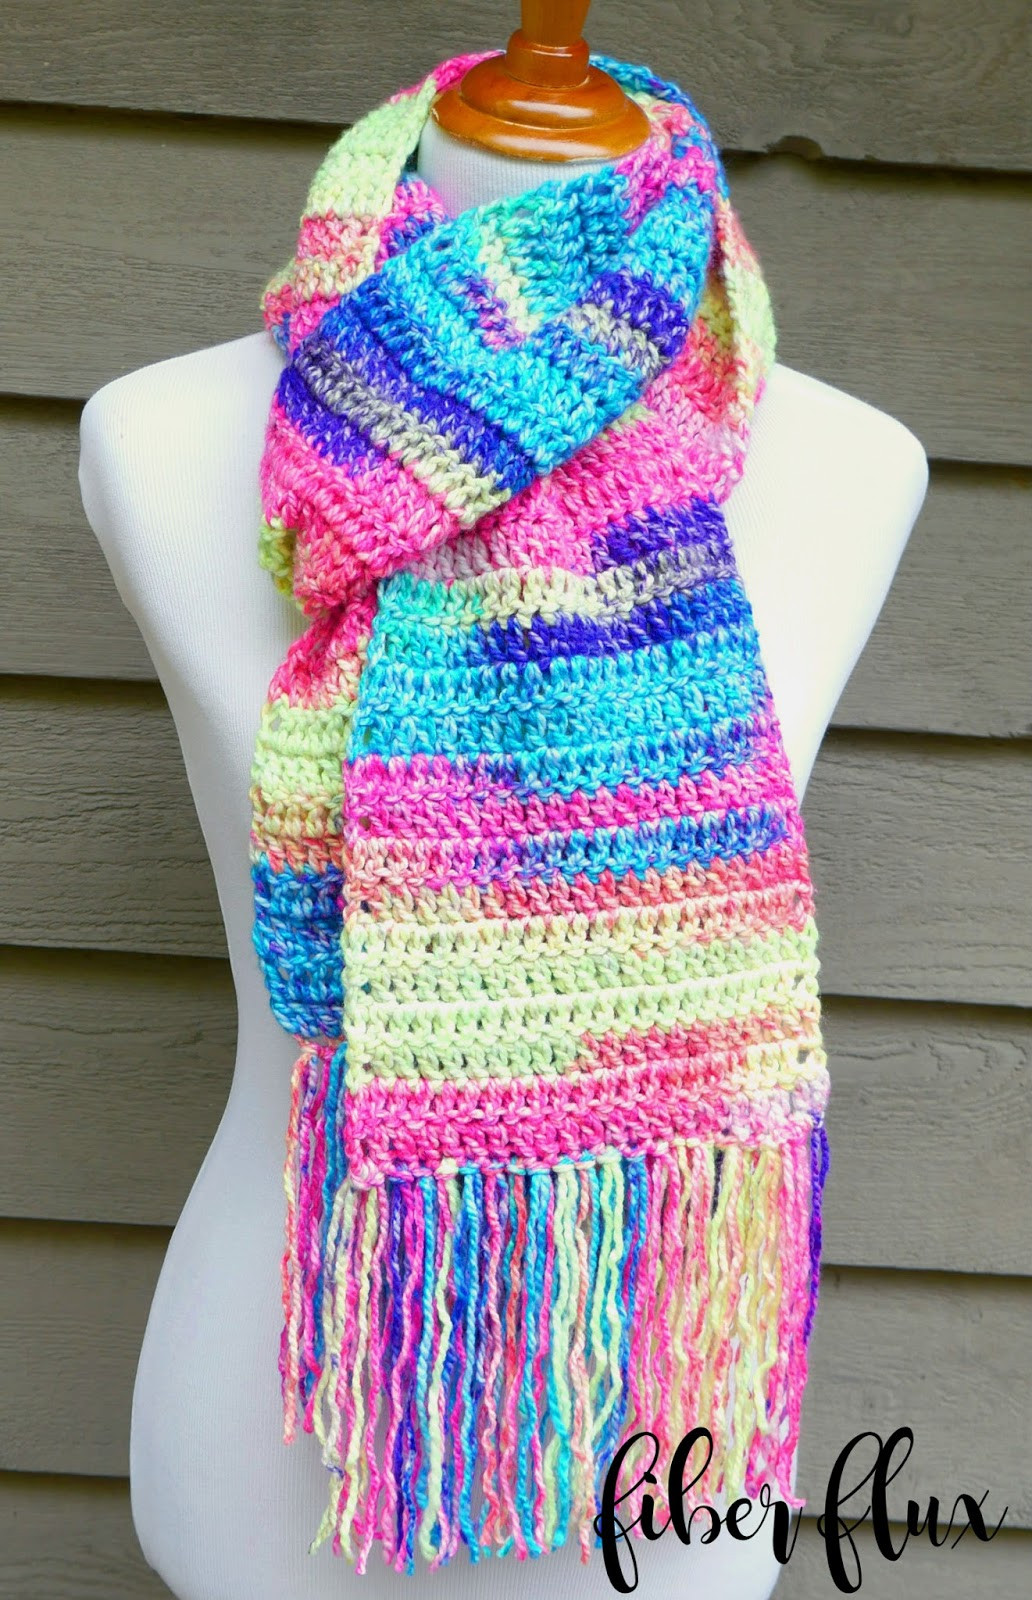 Crochet Scarves Patterns Lovely Fiber Flux Free Crochet Pattern Absolute Beginner Of Adorable 49 Models Crochet Scarves Patterns